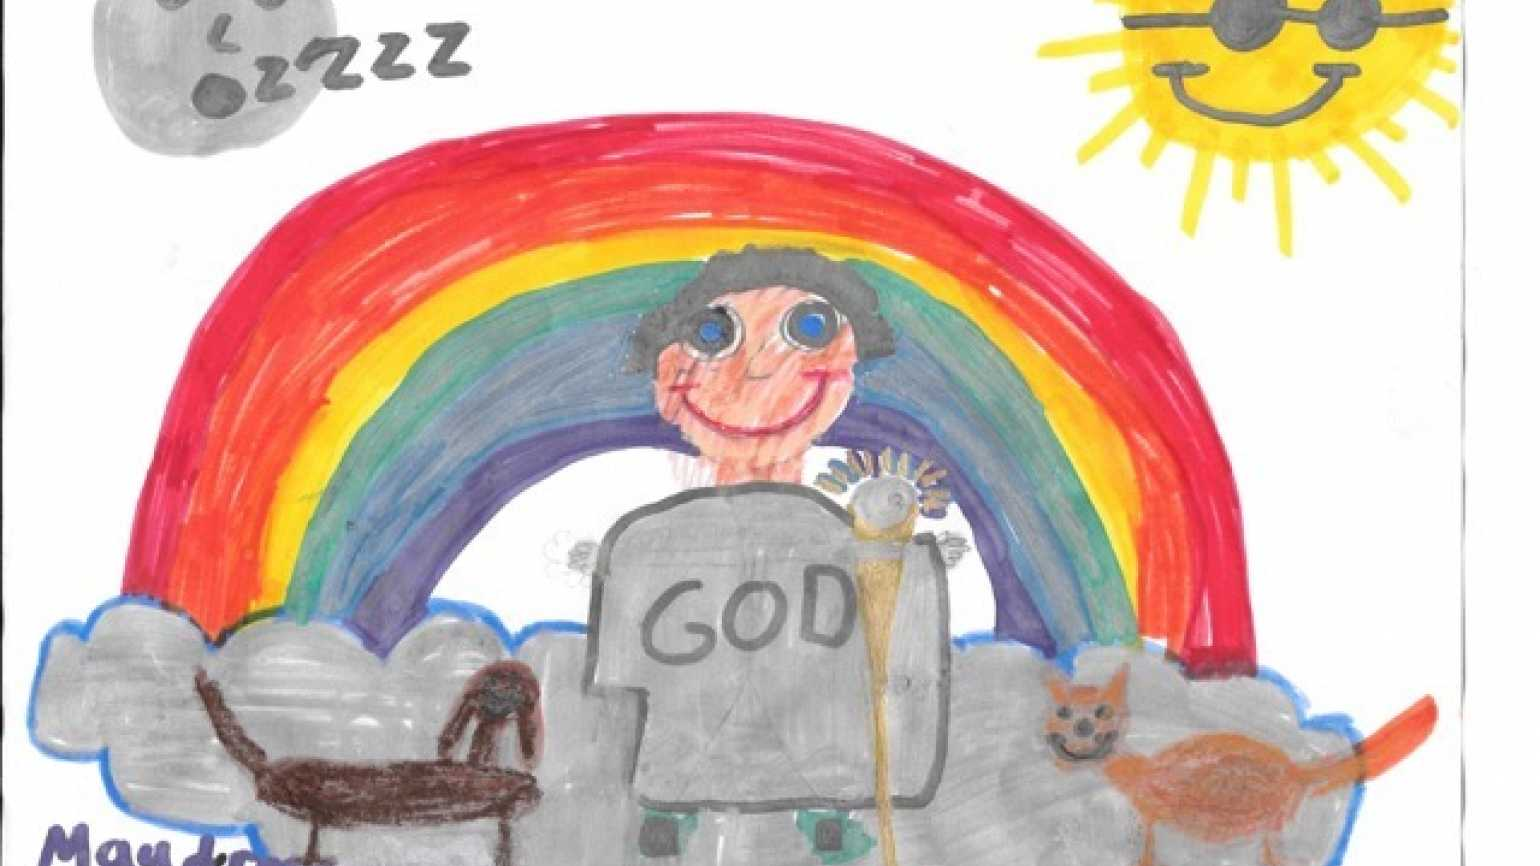 Maude Rose, age 9, sees God in heaven.